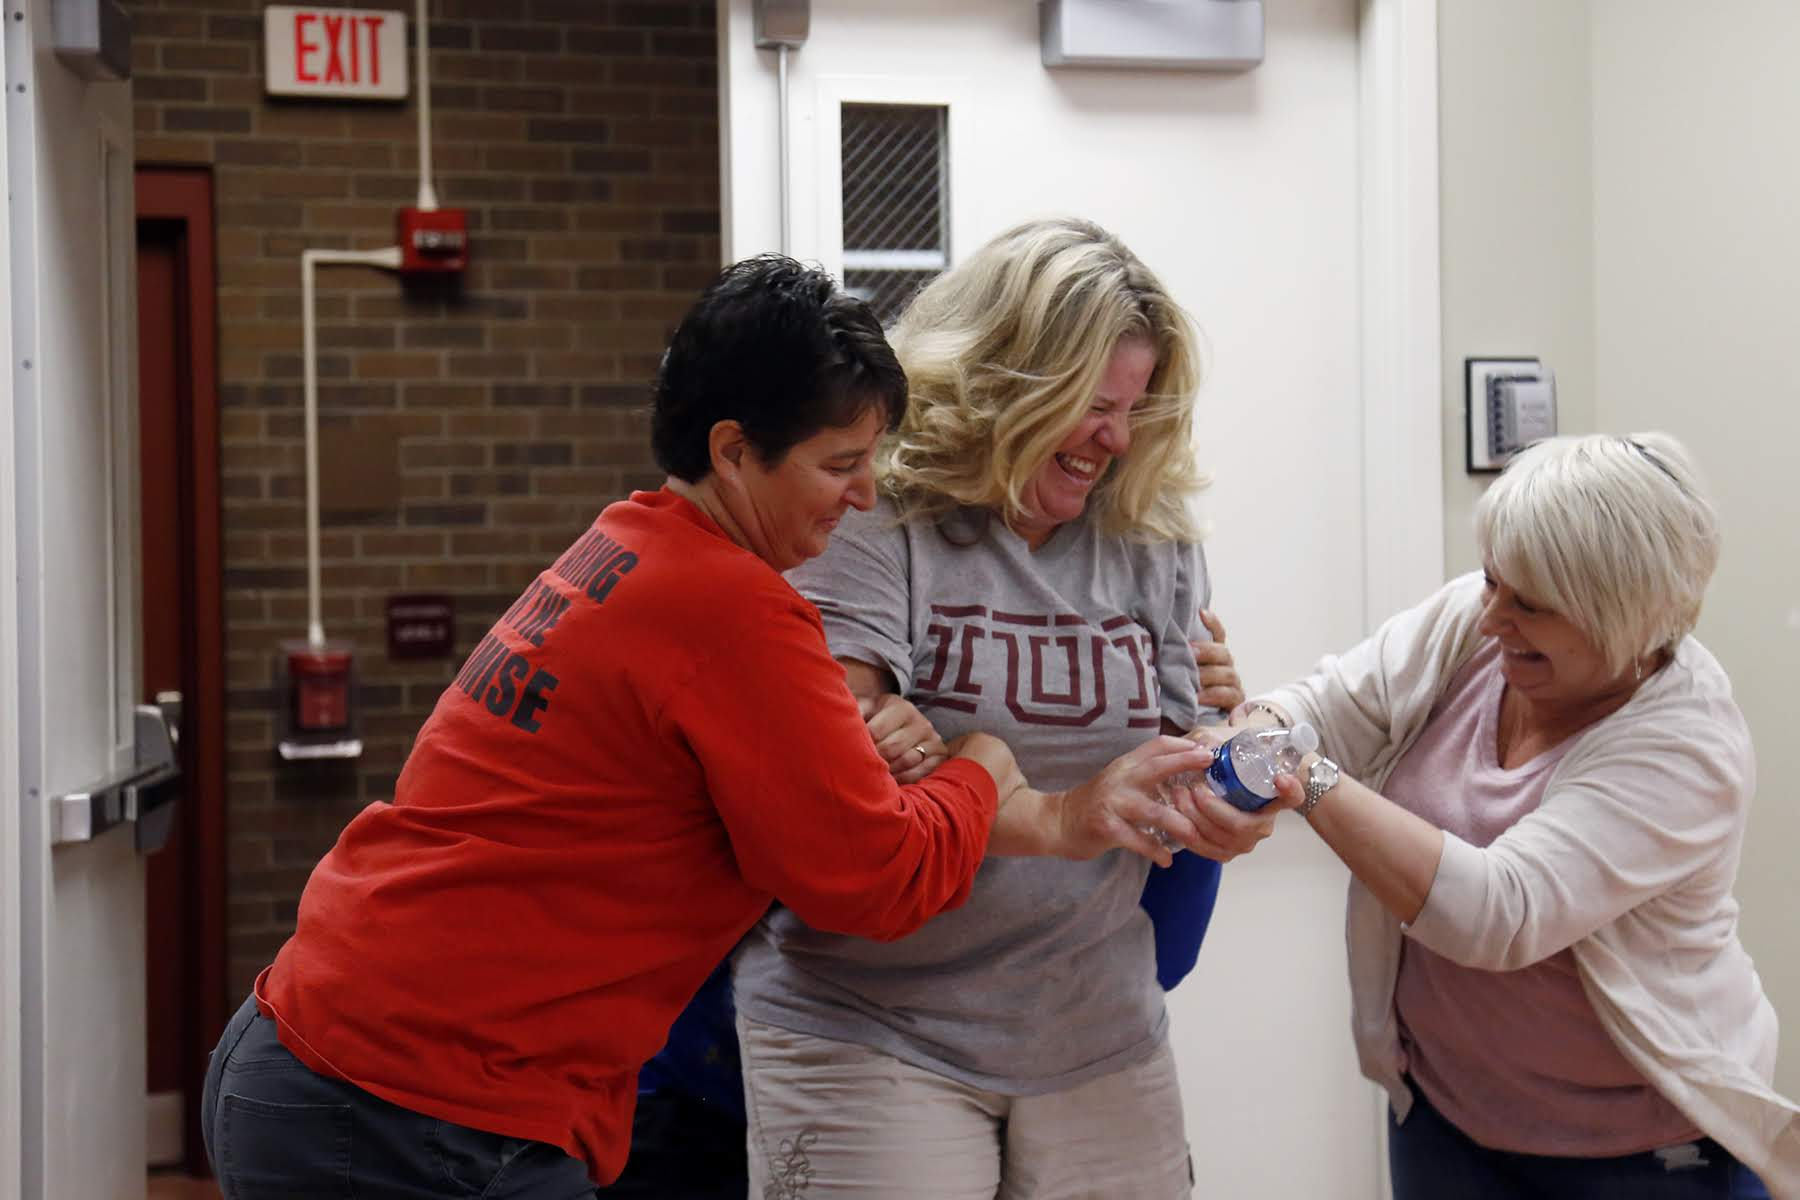 Using a water bottle as a stand-in for a gun, Karen Arnold (center), principal at Fulton PreK-5, is swarmed by Patti Camper (left), principal at Arsenal 6-8, and LouAnn Zwieryznski (right), principal at Liberty K-5, during ALICE training on Aug. 7. (Photo by Ryan Loew/PublicSource)